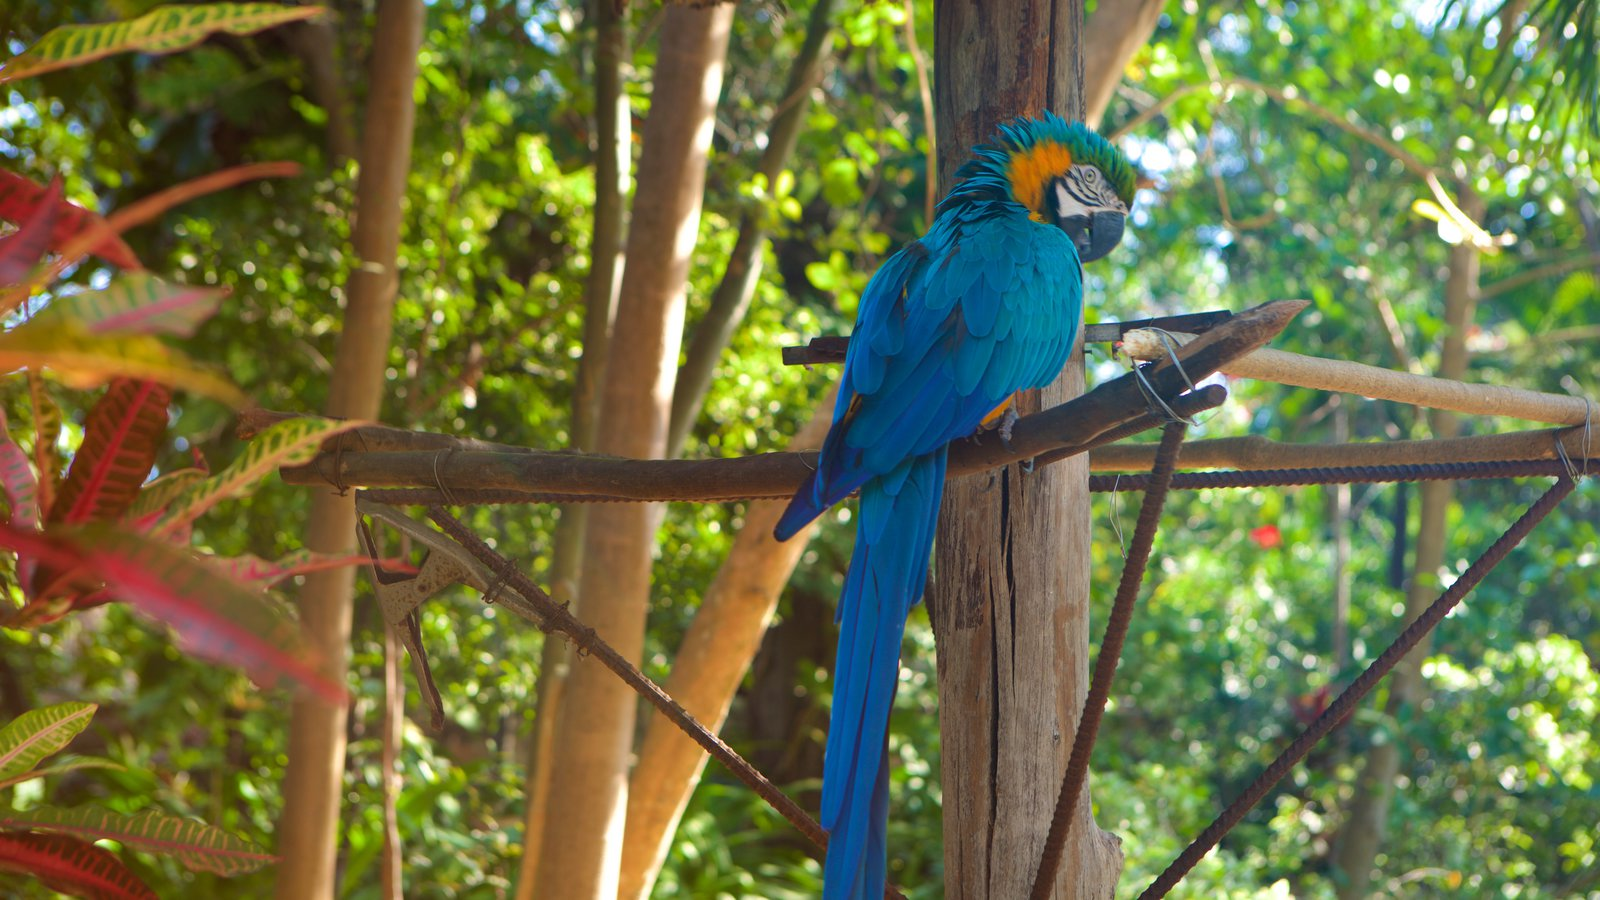 Ardastra Gardens, Zoo & Conservation Center Nassau, Bird Pictures: View Images of Ardastra Gardens, Zoo and ...